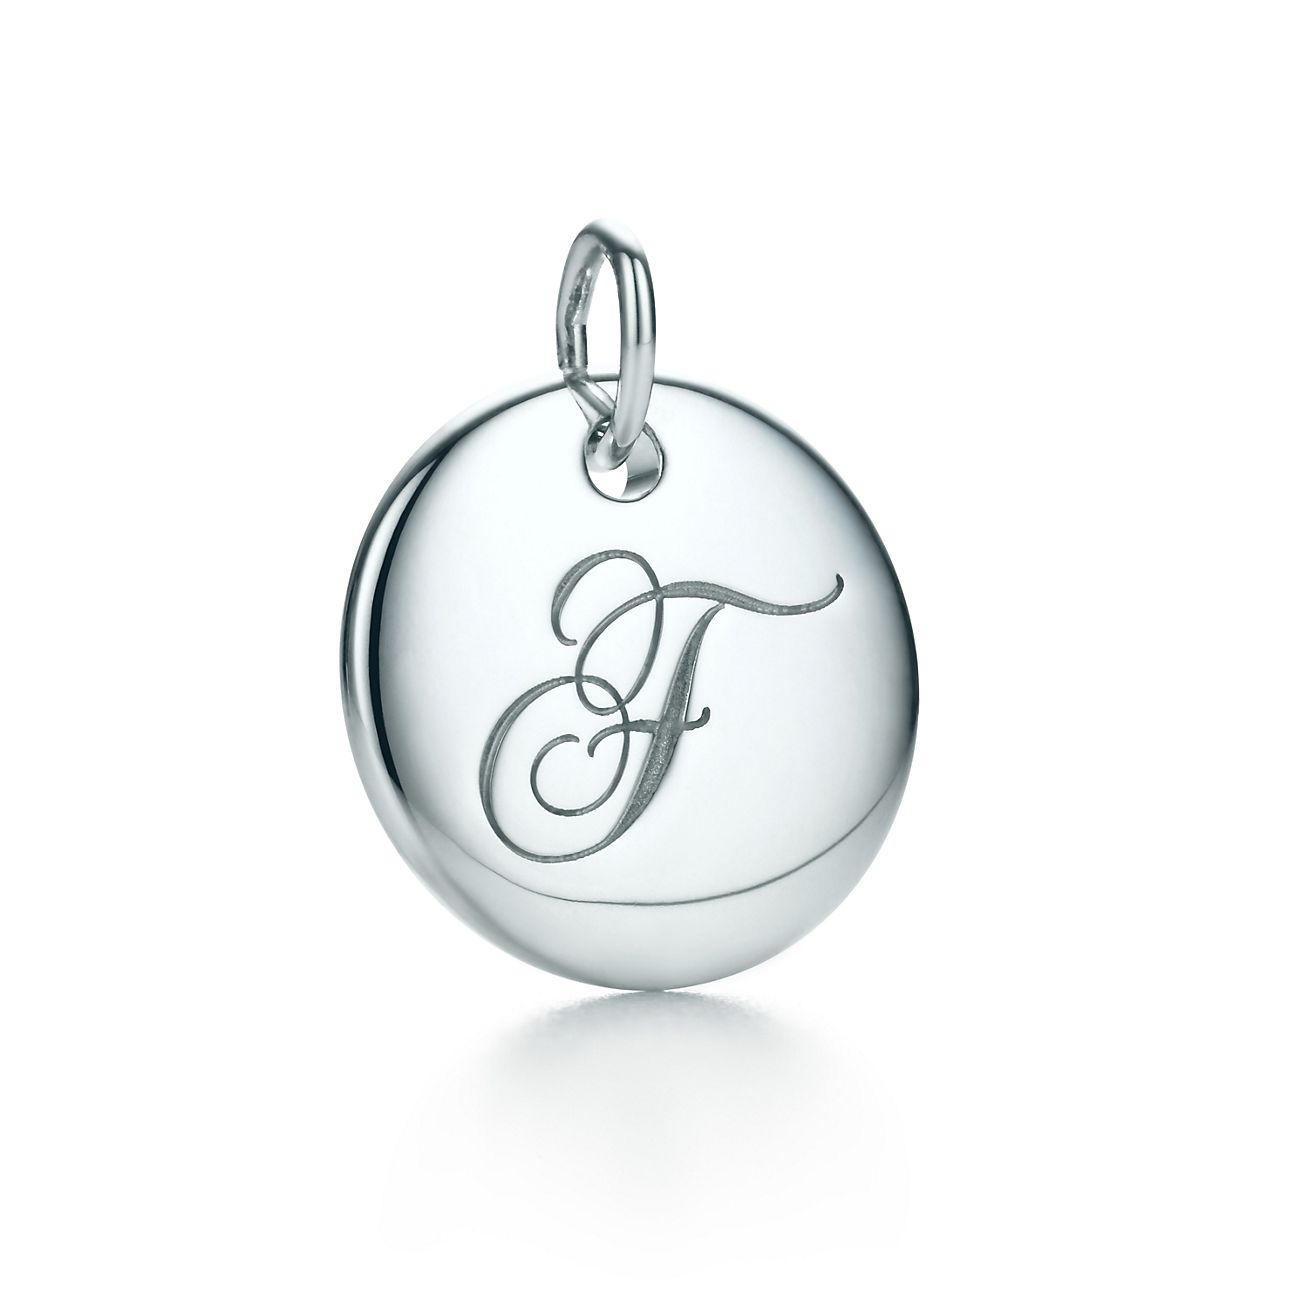 Tiffany Charms alphabet charm in sterling silver Letters A-Z available - Size N Tiffany & Co.